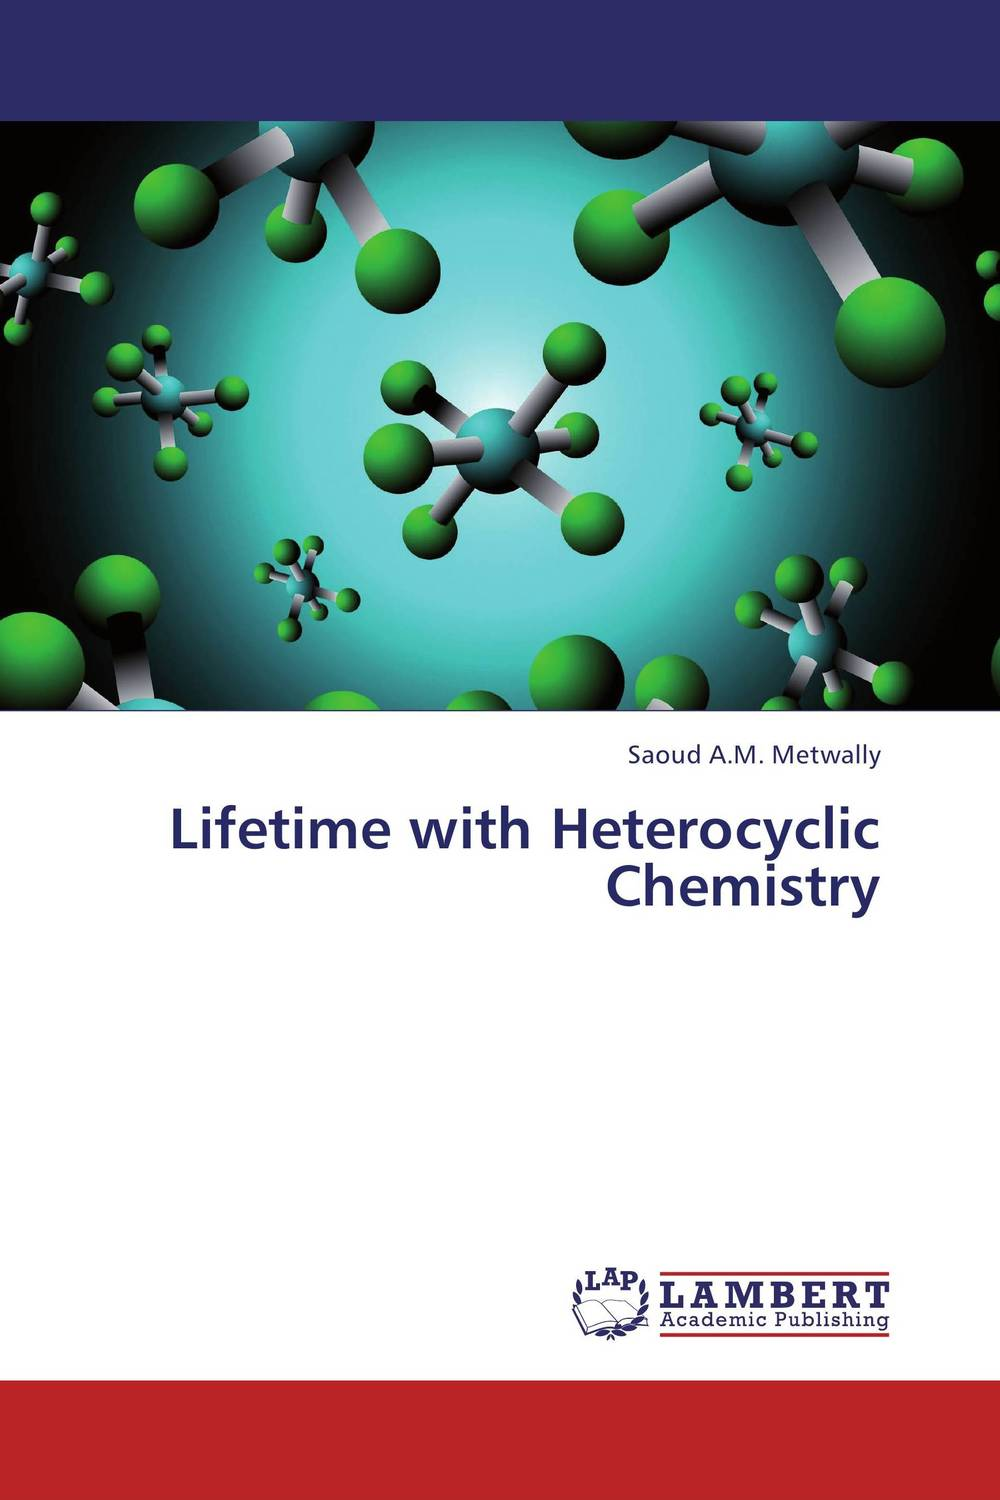 Lifetime with Heterocyclic Chemistry medicinal chemistry of heterocyclic natural compounds